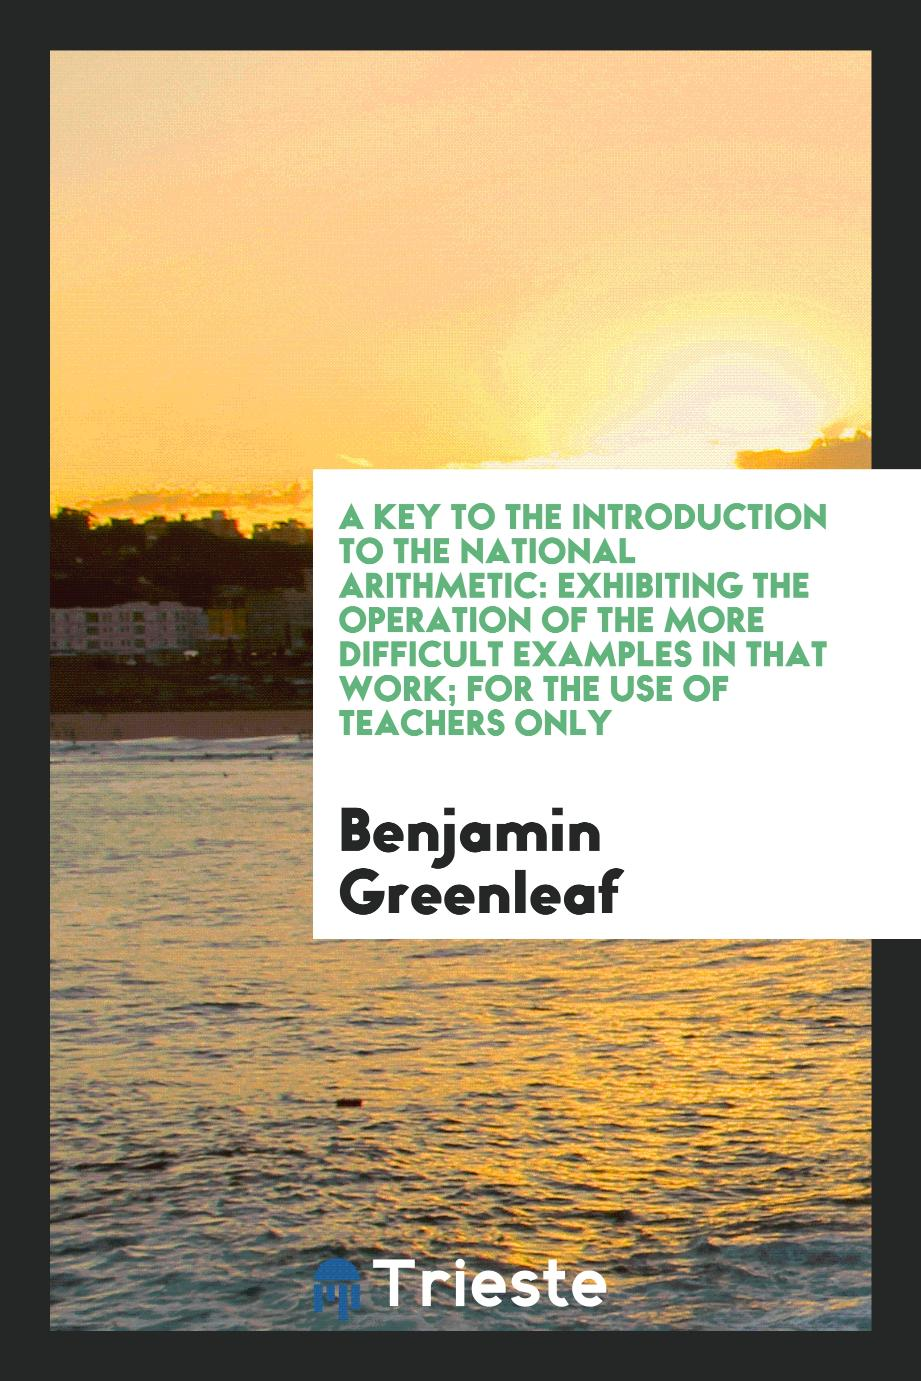 Benjamin Greenleaf - A Key to the Introduction to the National Arithmetic: Exhibiting the Operation of the More Difficult Examples in That Work; For the Use of Teachers Only